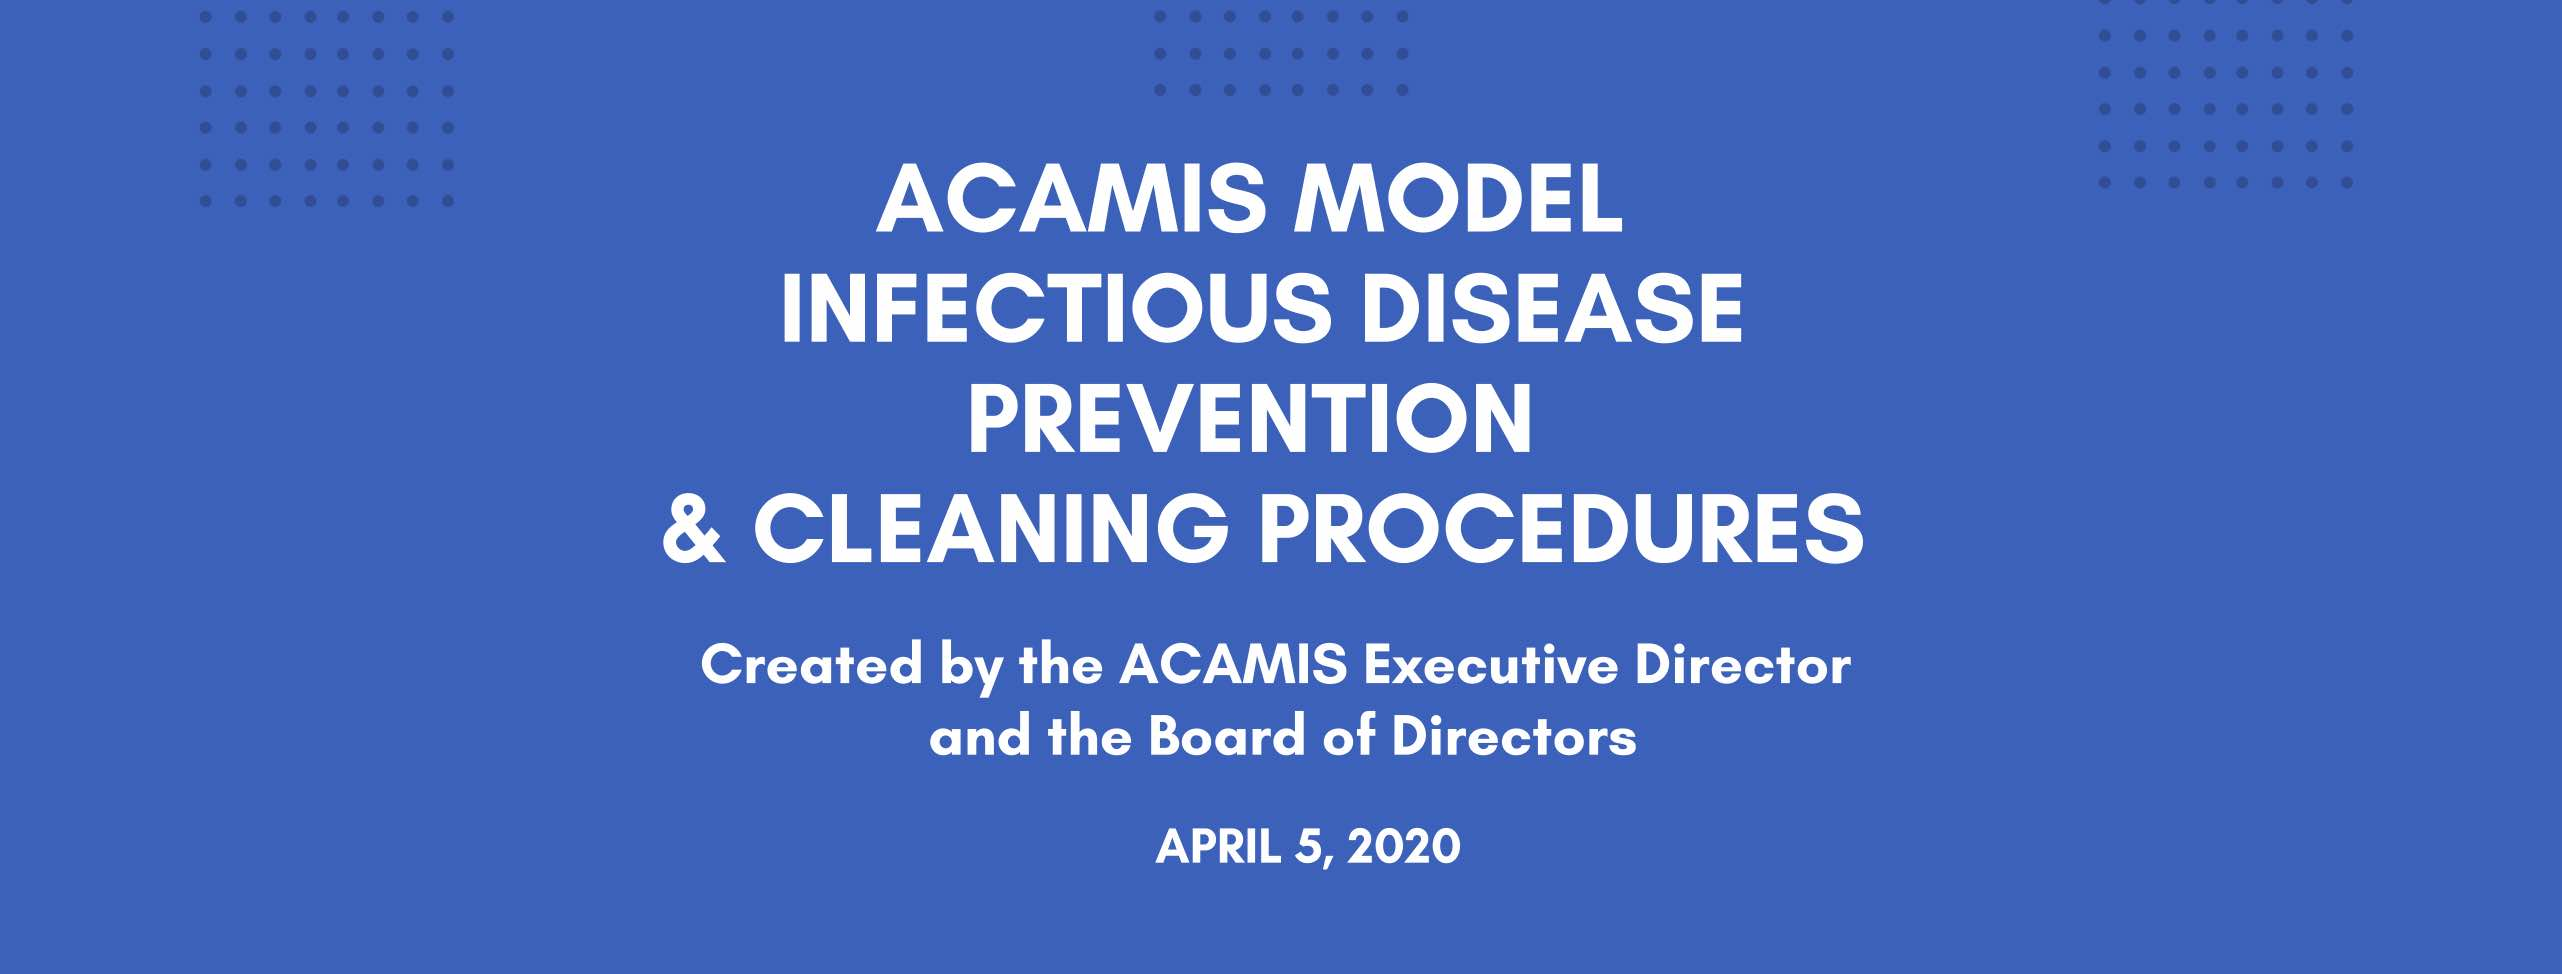 ACAMIS Model Infectious Disease Prevention and Cleaning Procedures